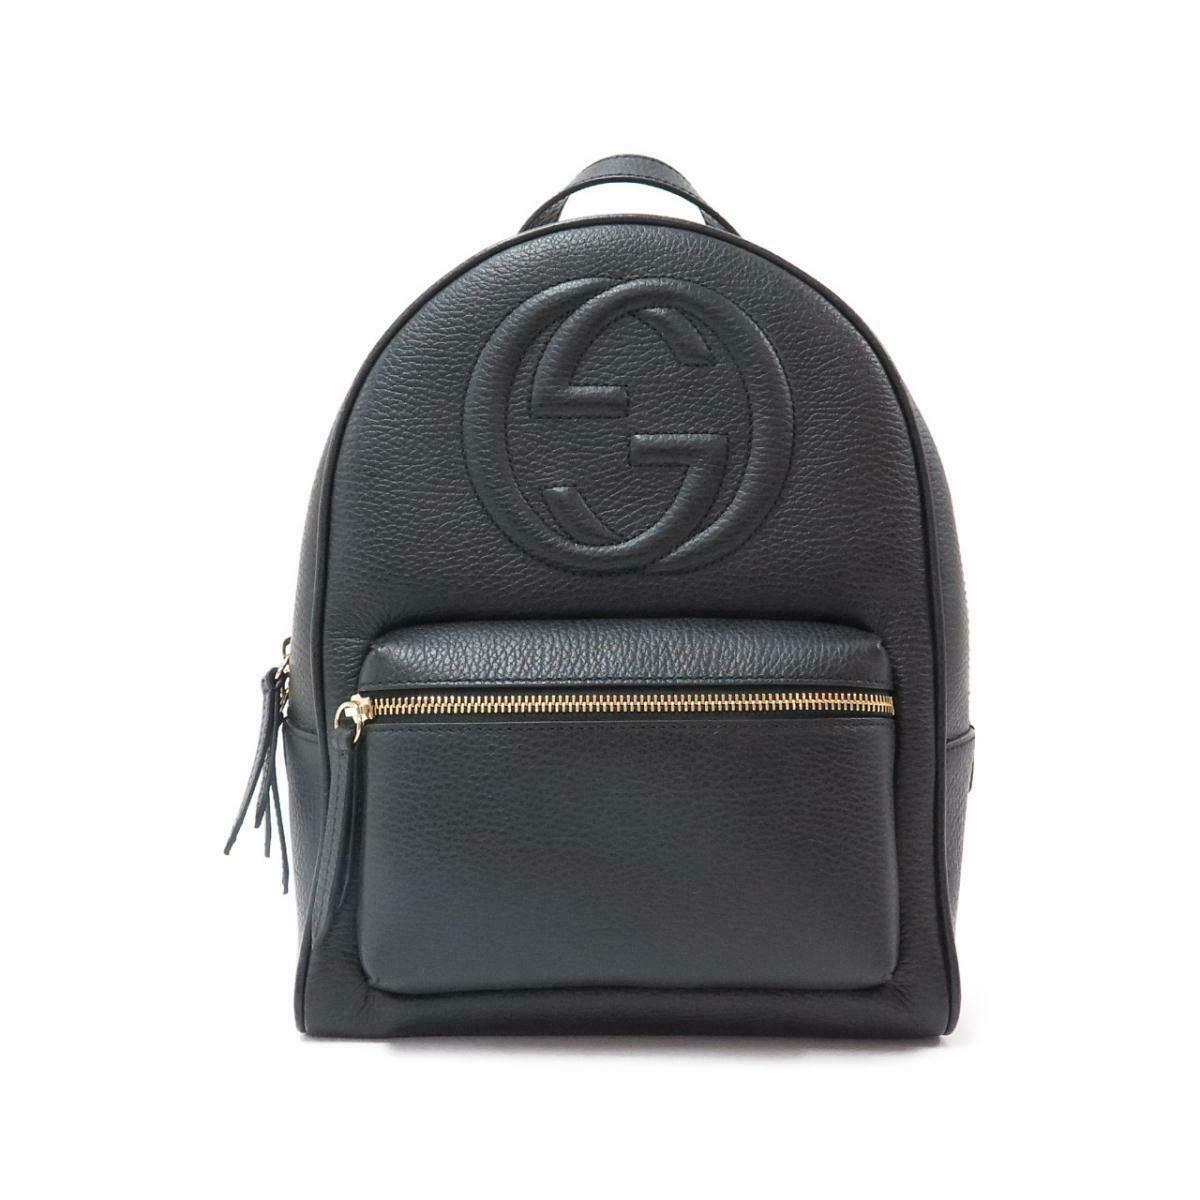 Gucci Soho Pebbled Calfskin Chain Black Leather Backpack